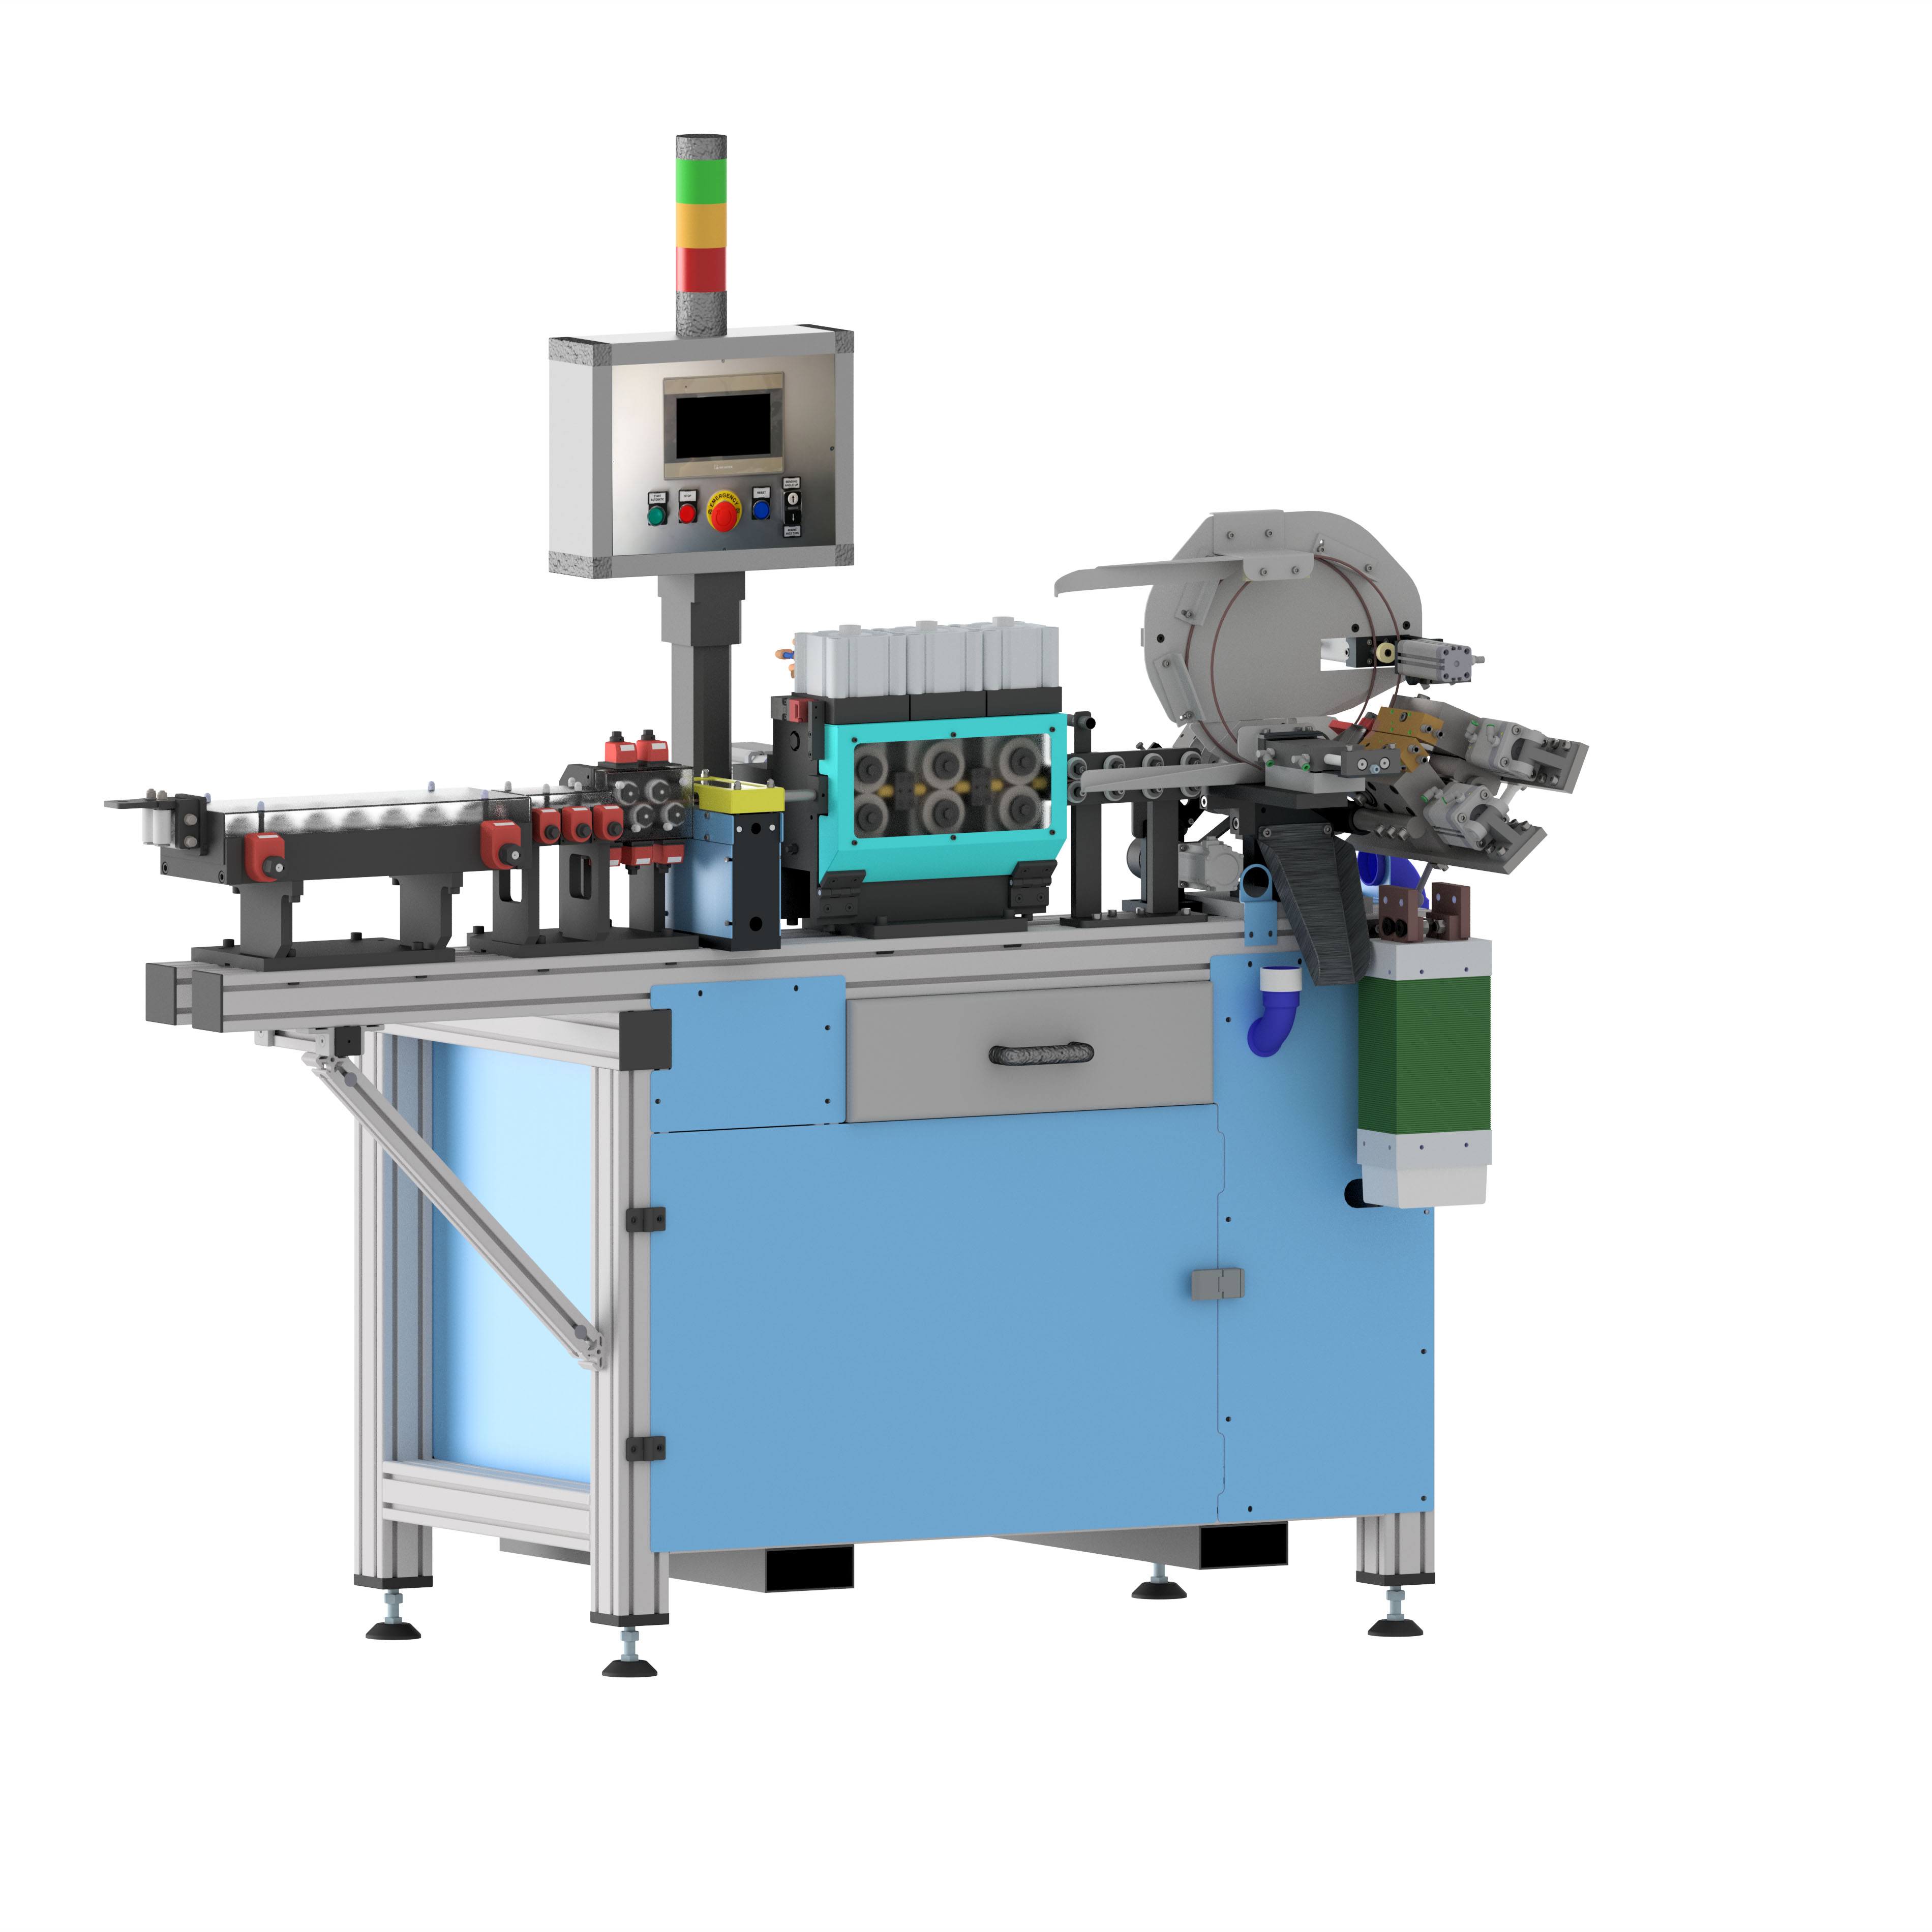 RINGFORMING - WELDING MACHINE